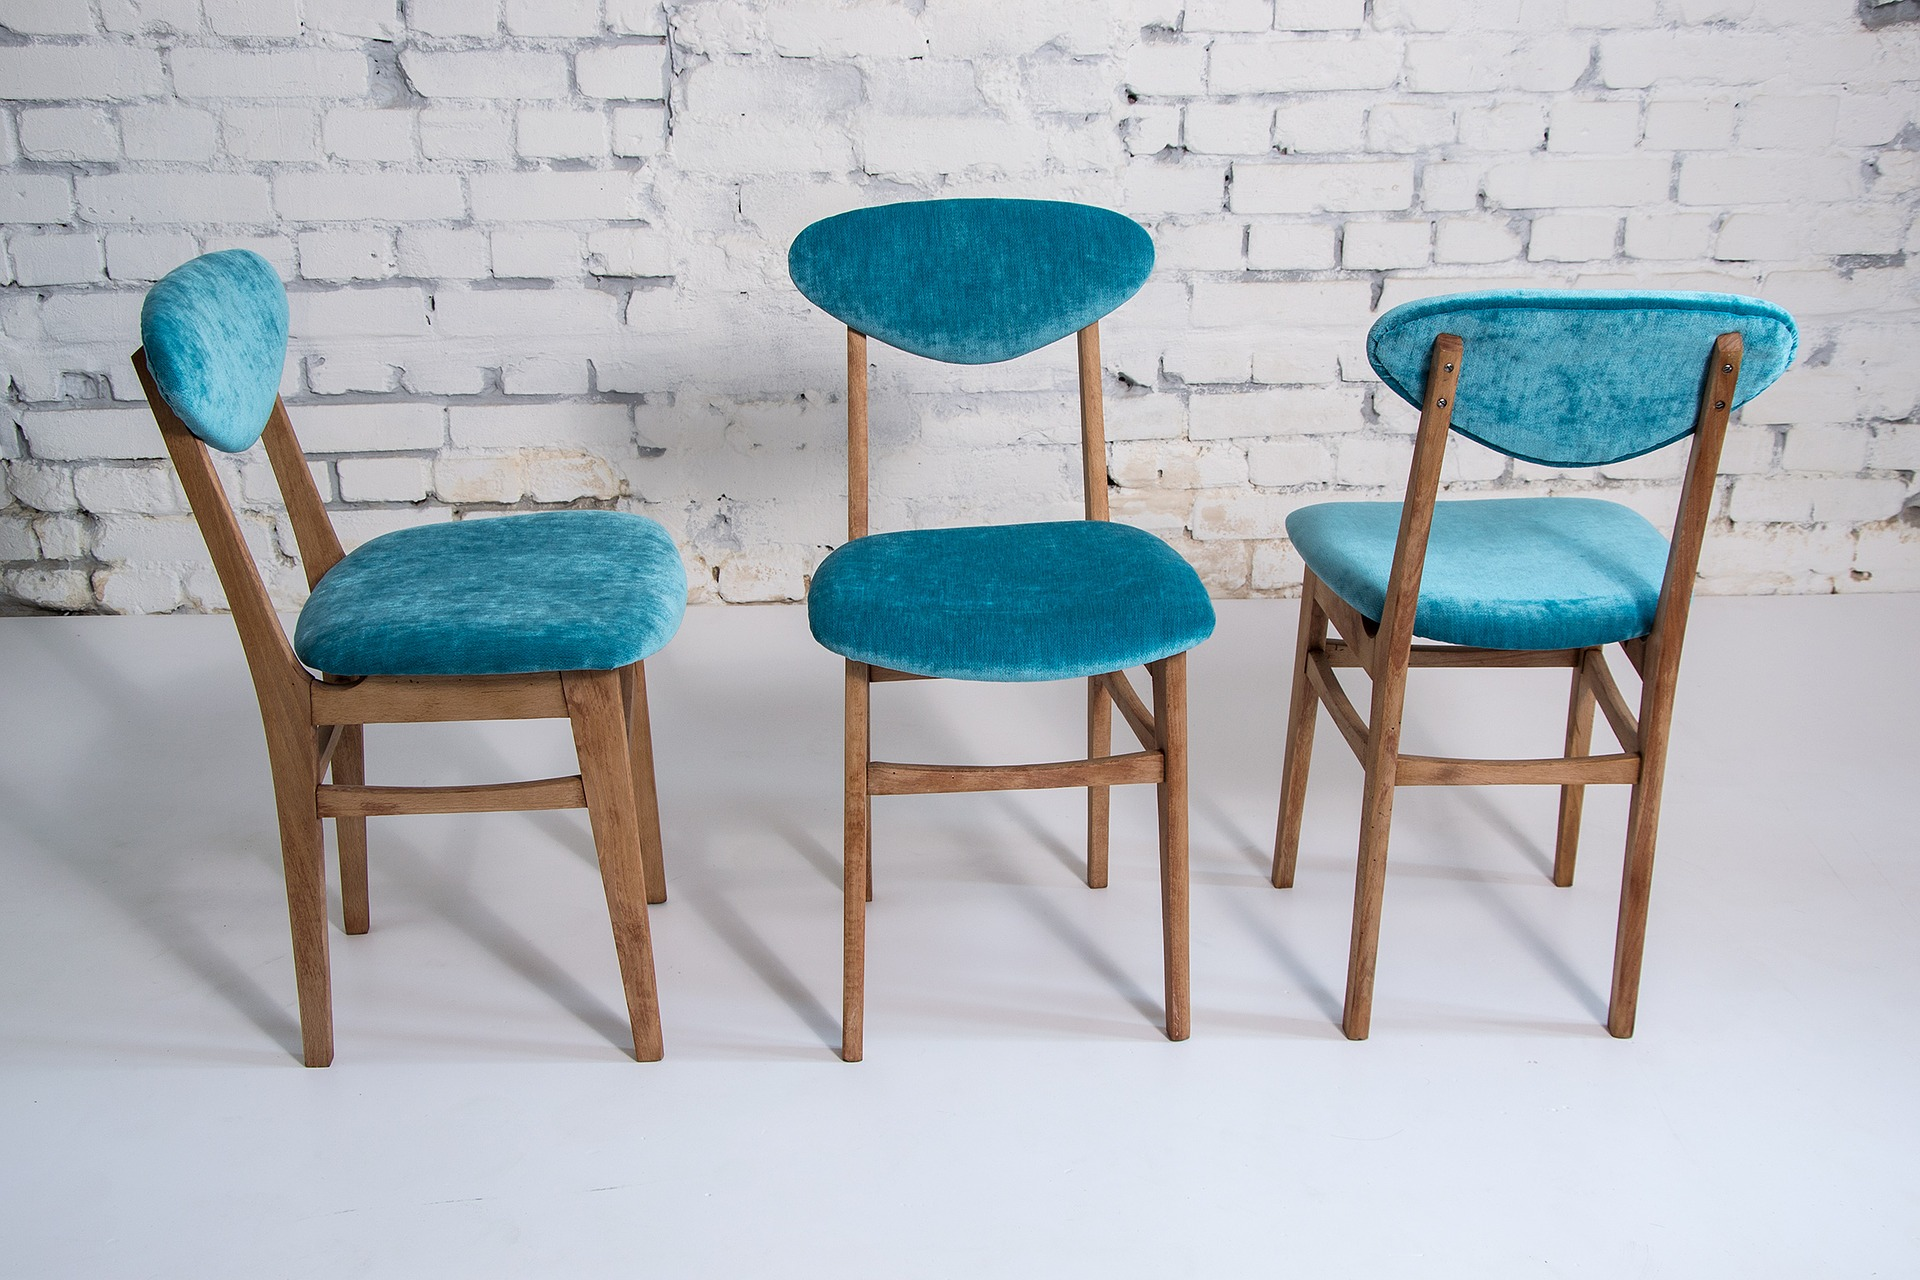 chairs-2160184_1920